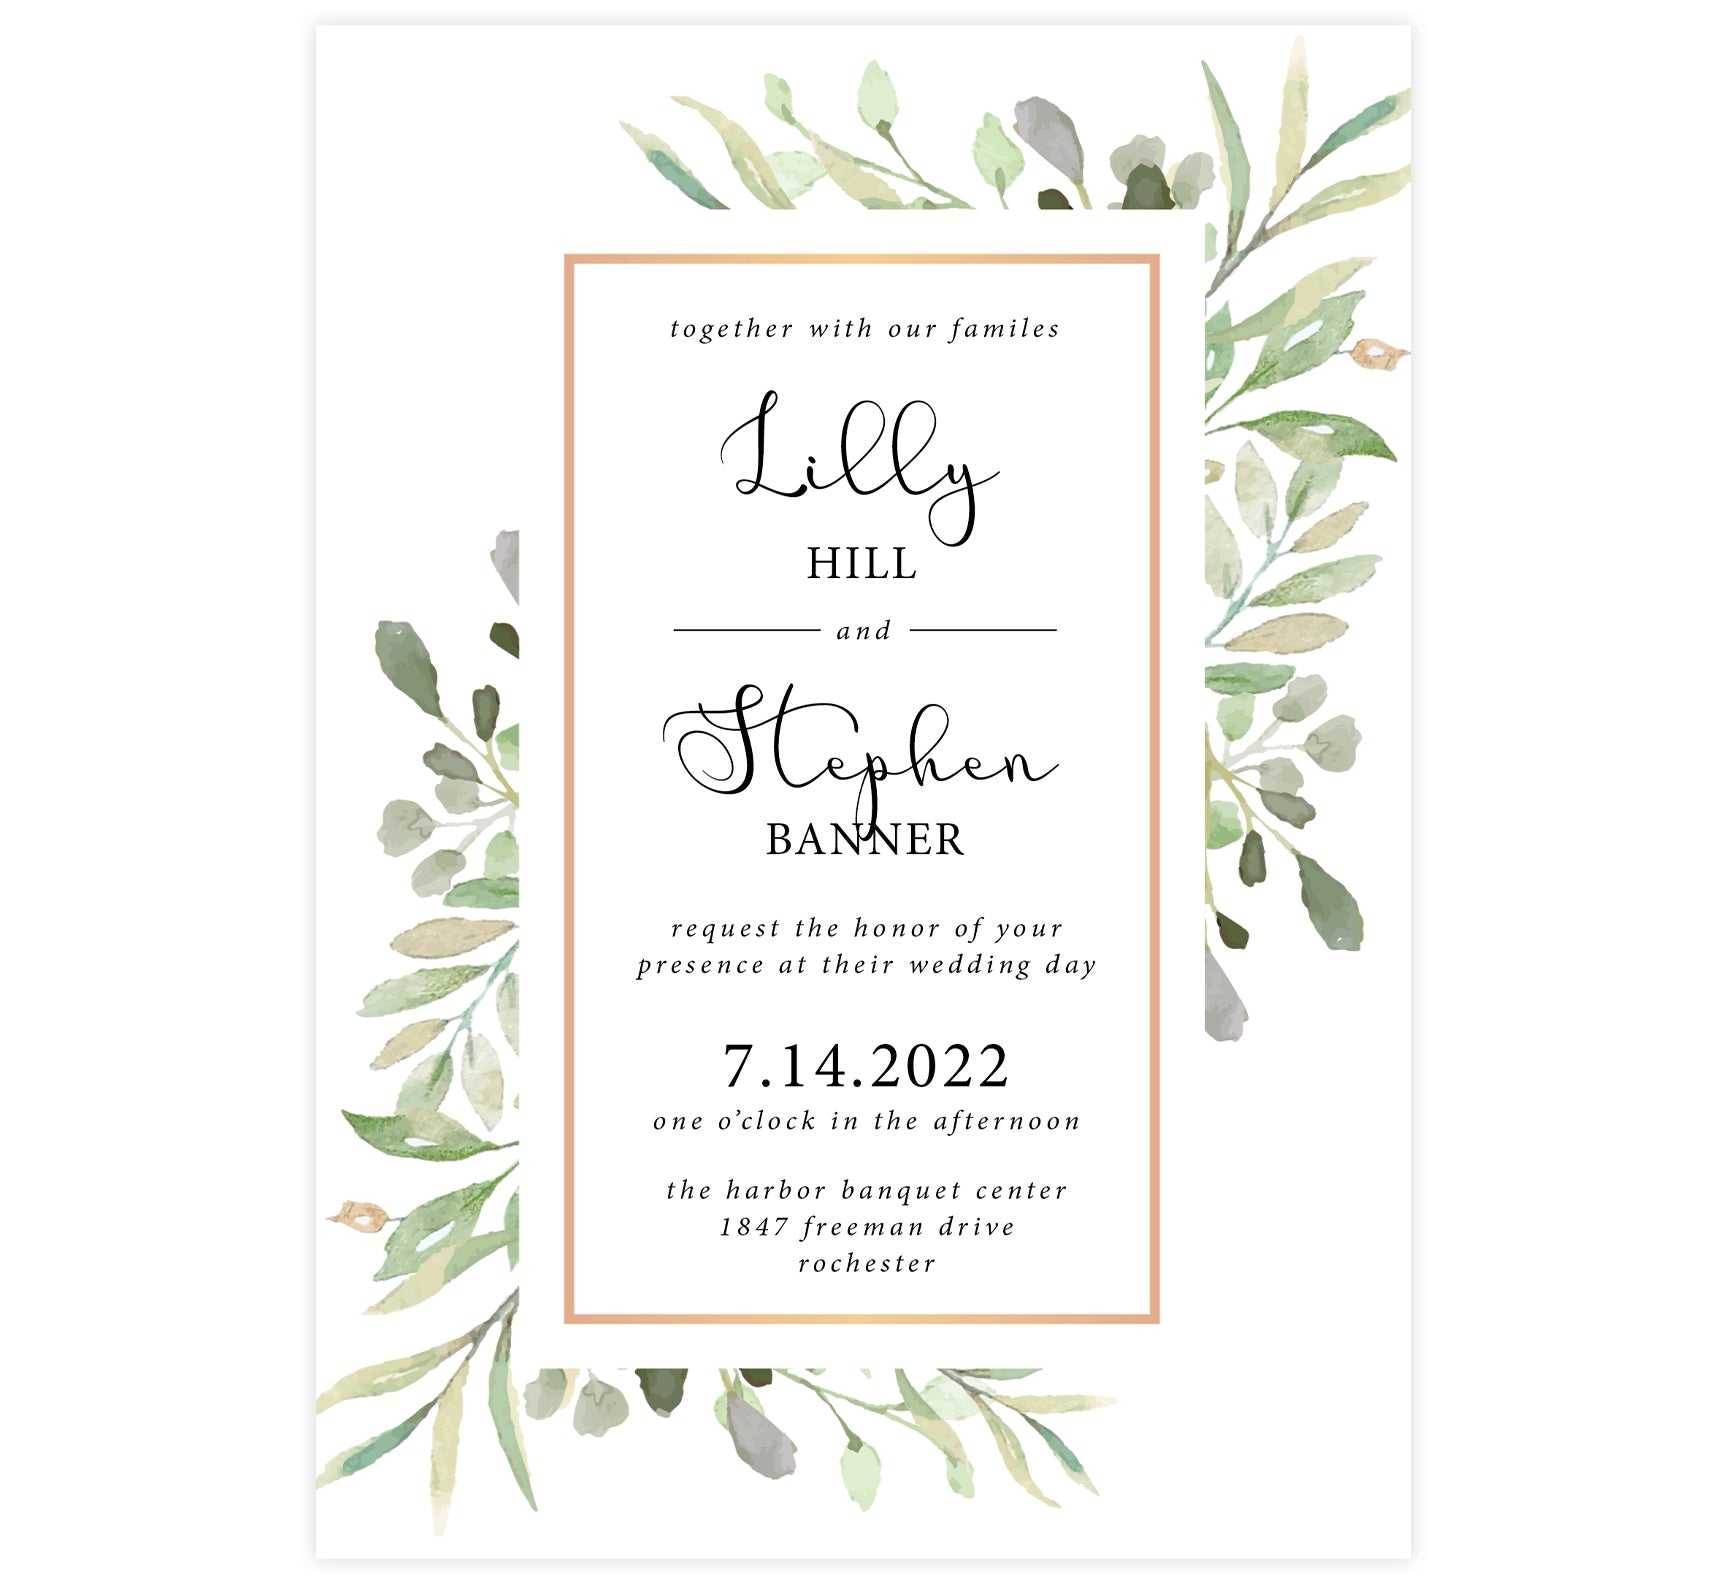 Frame of Leaves Wedding Invitation; white background with watercolor leaves, gold frame and black text